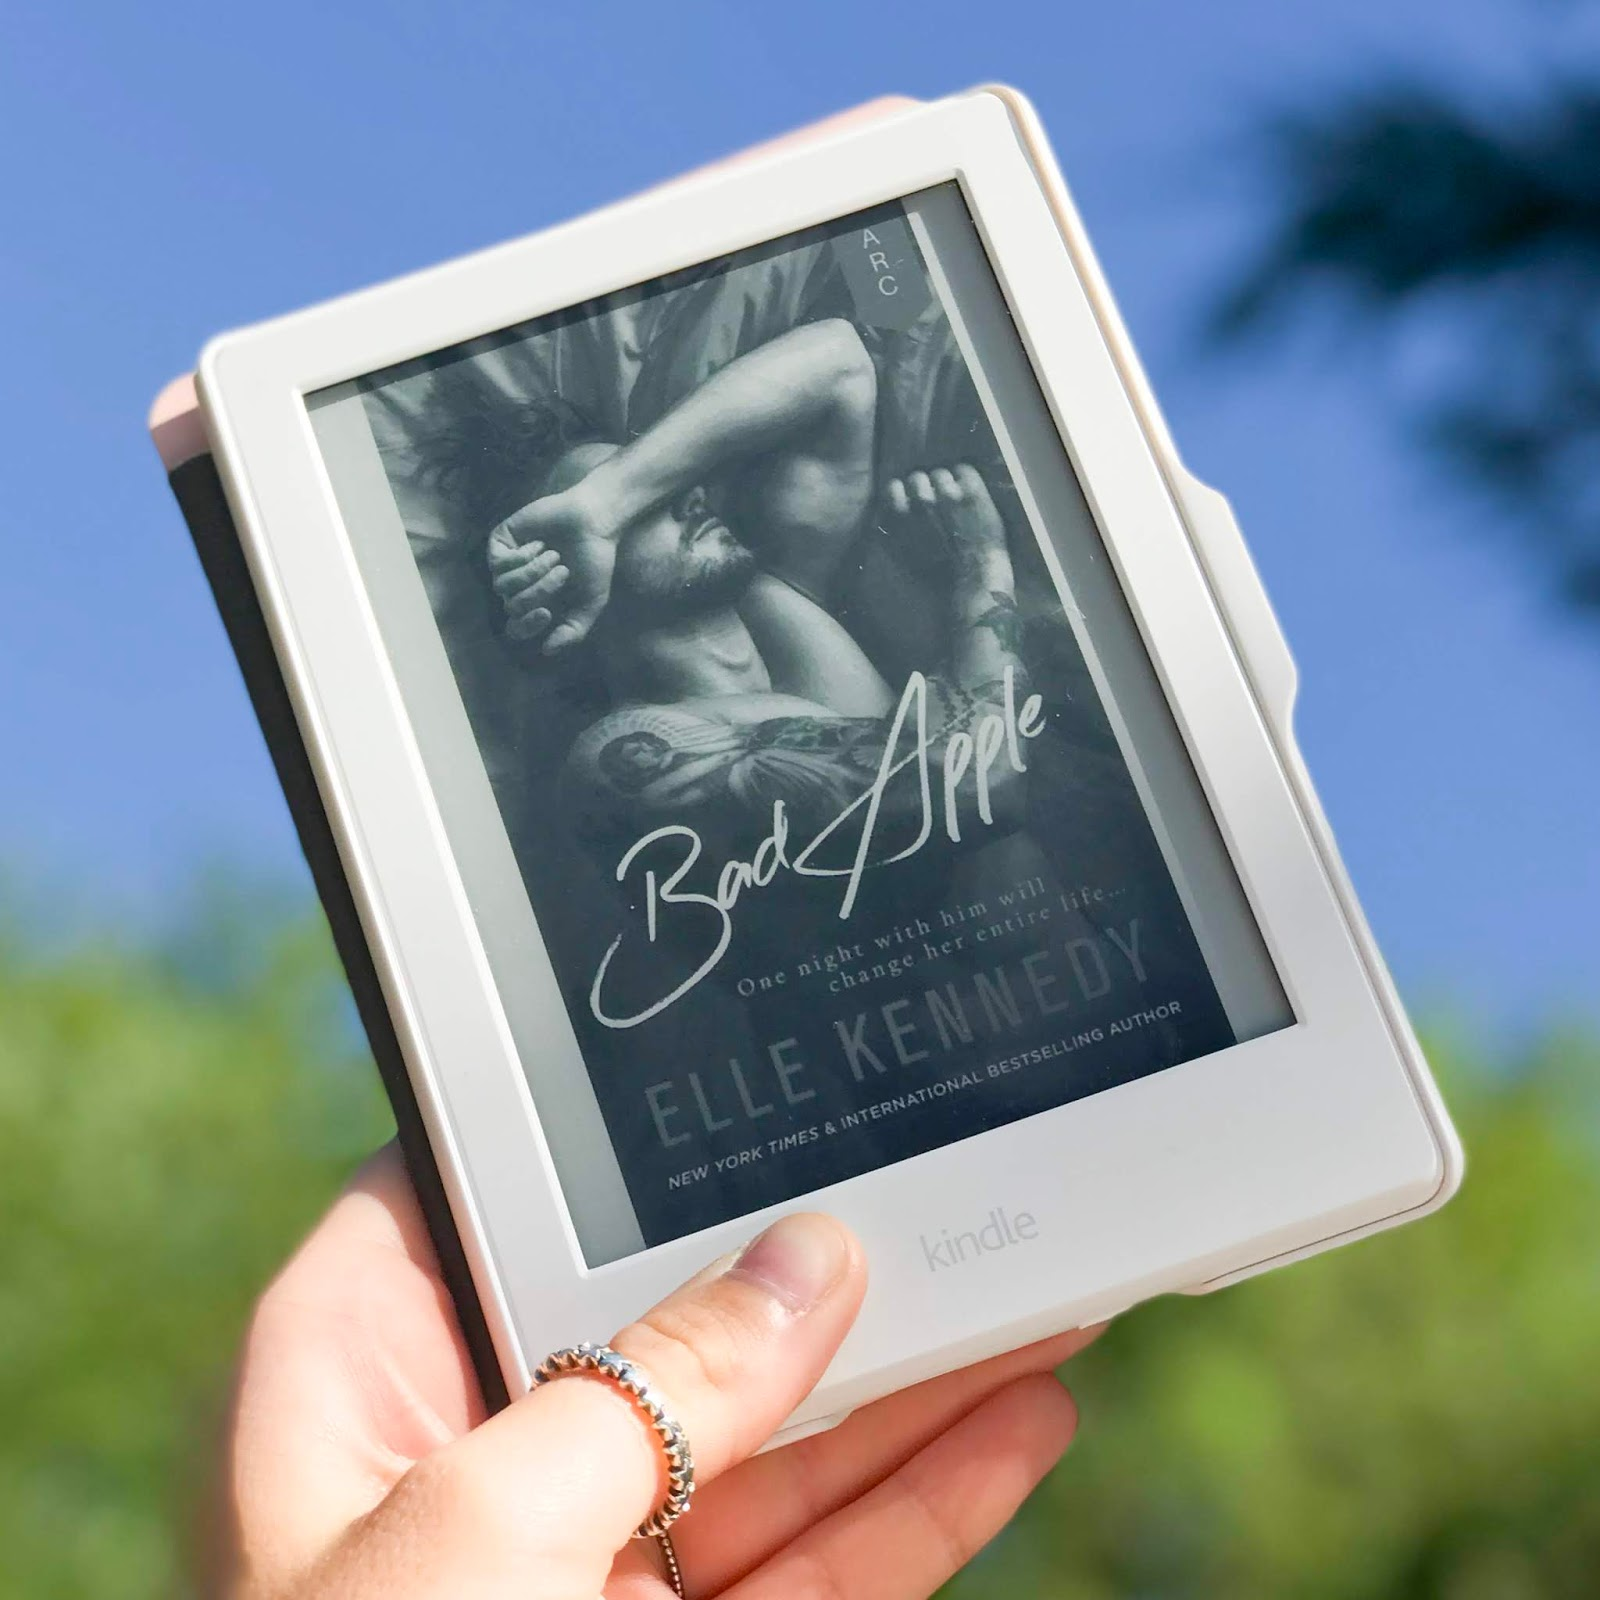 Bad Apple - Elle Kennedy   Book Review